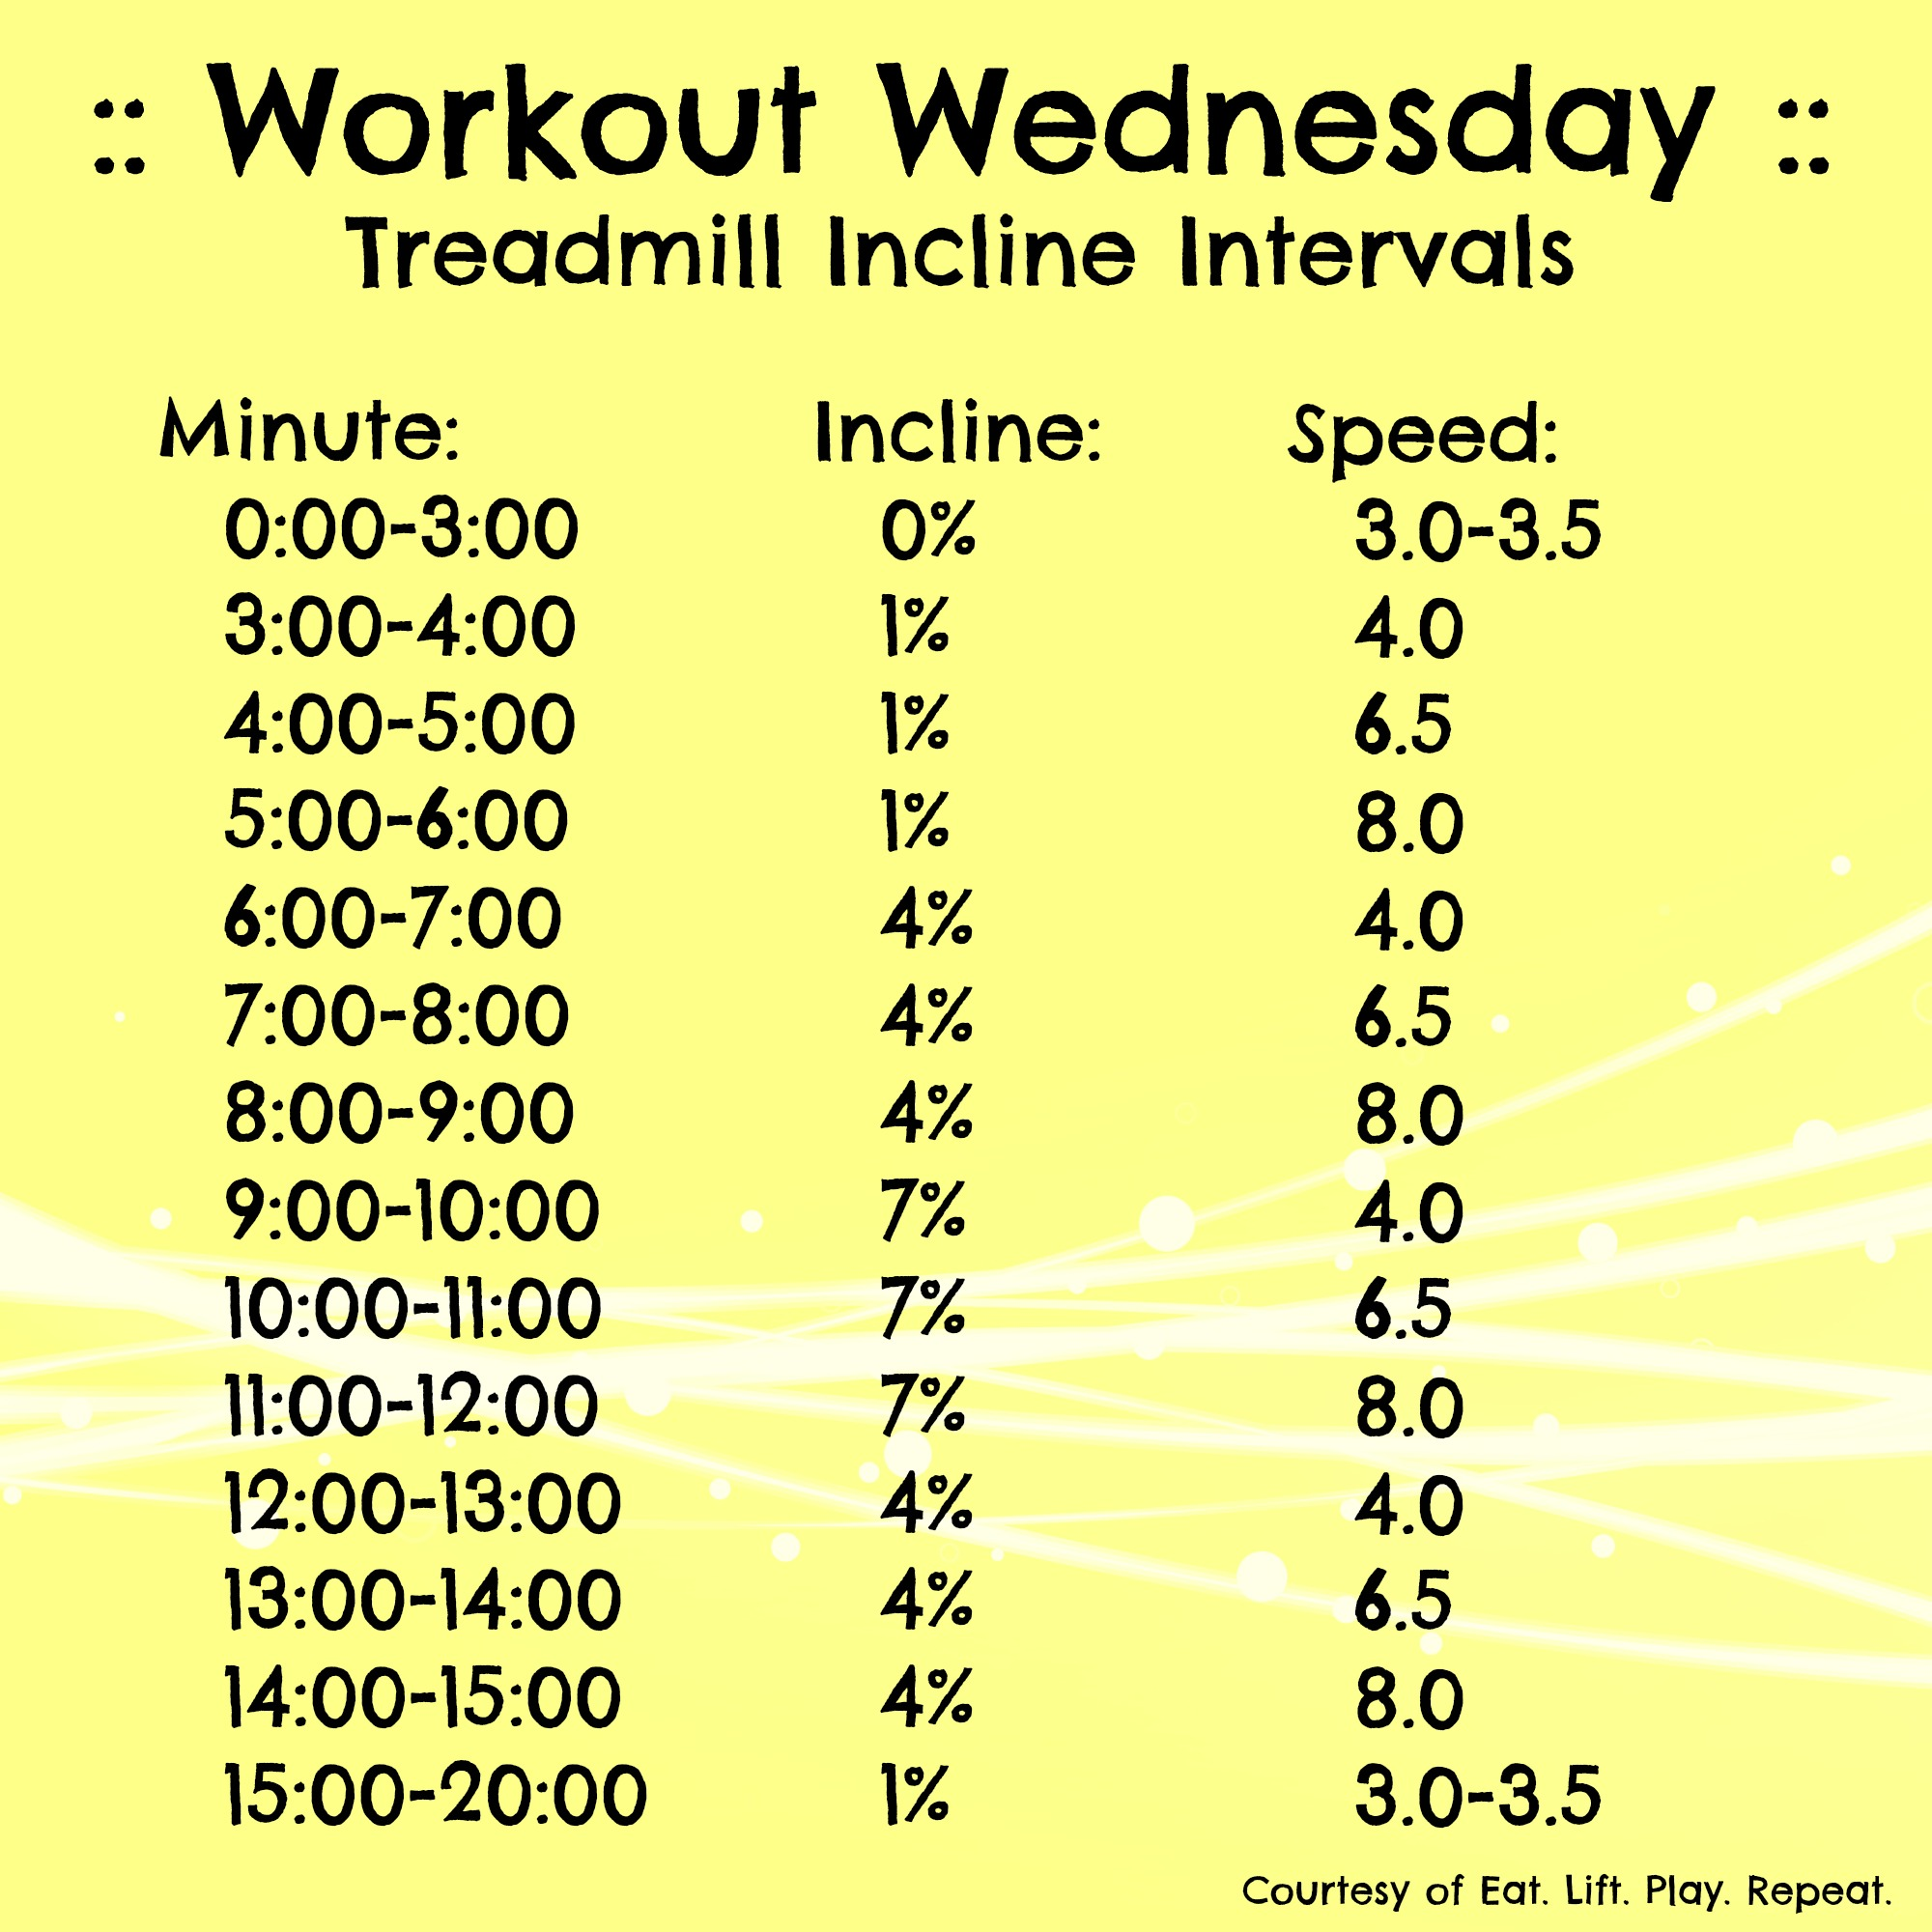 Workout Wednesday Treadmill Incline Intervals